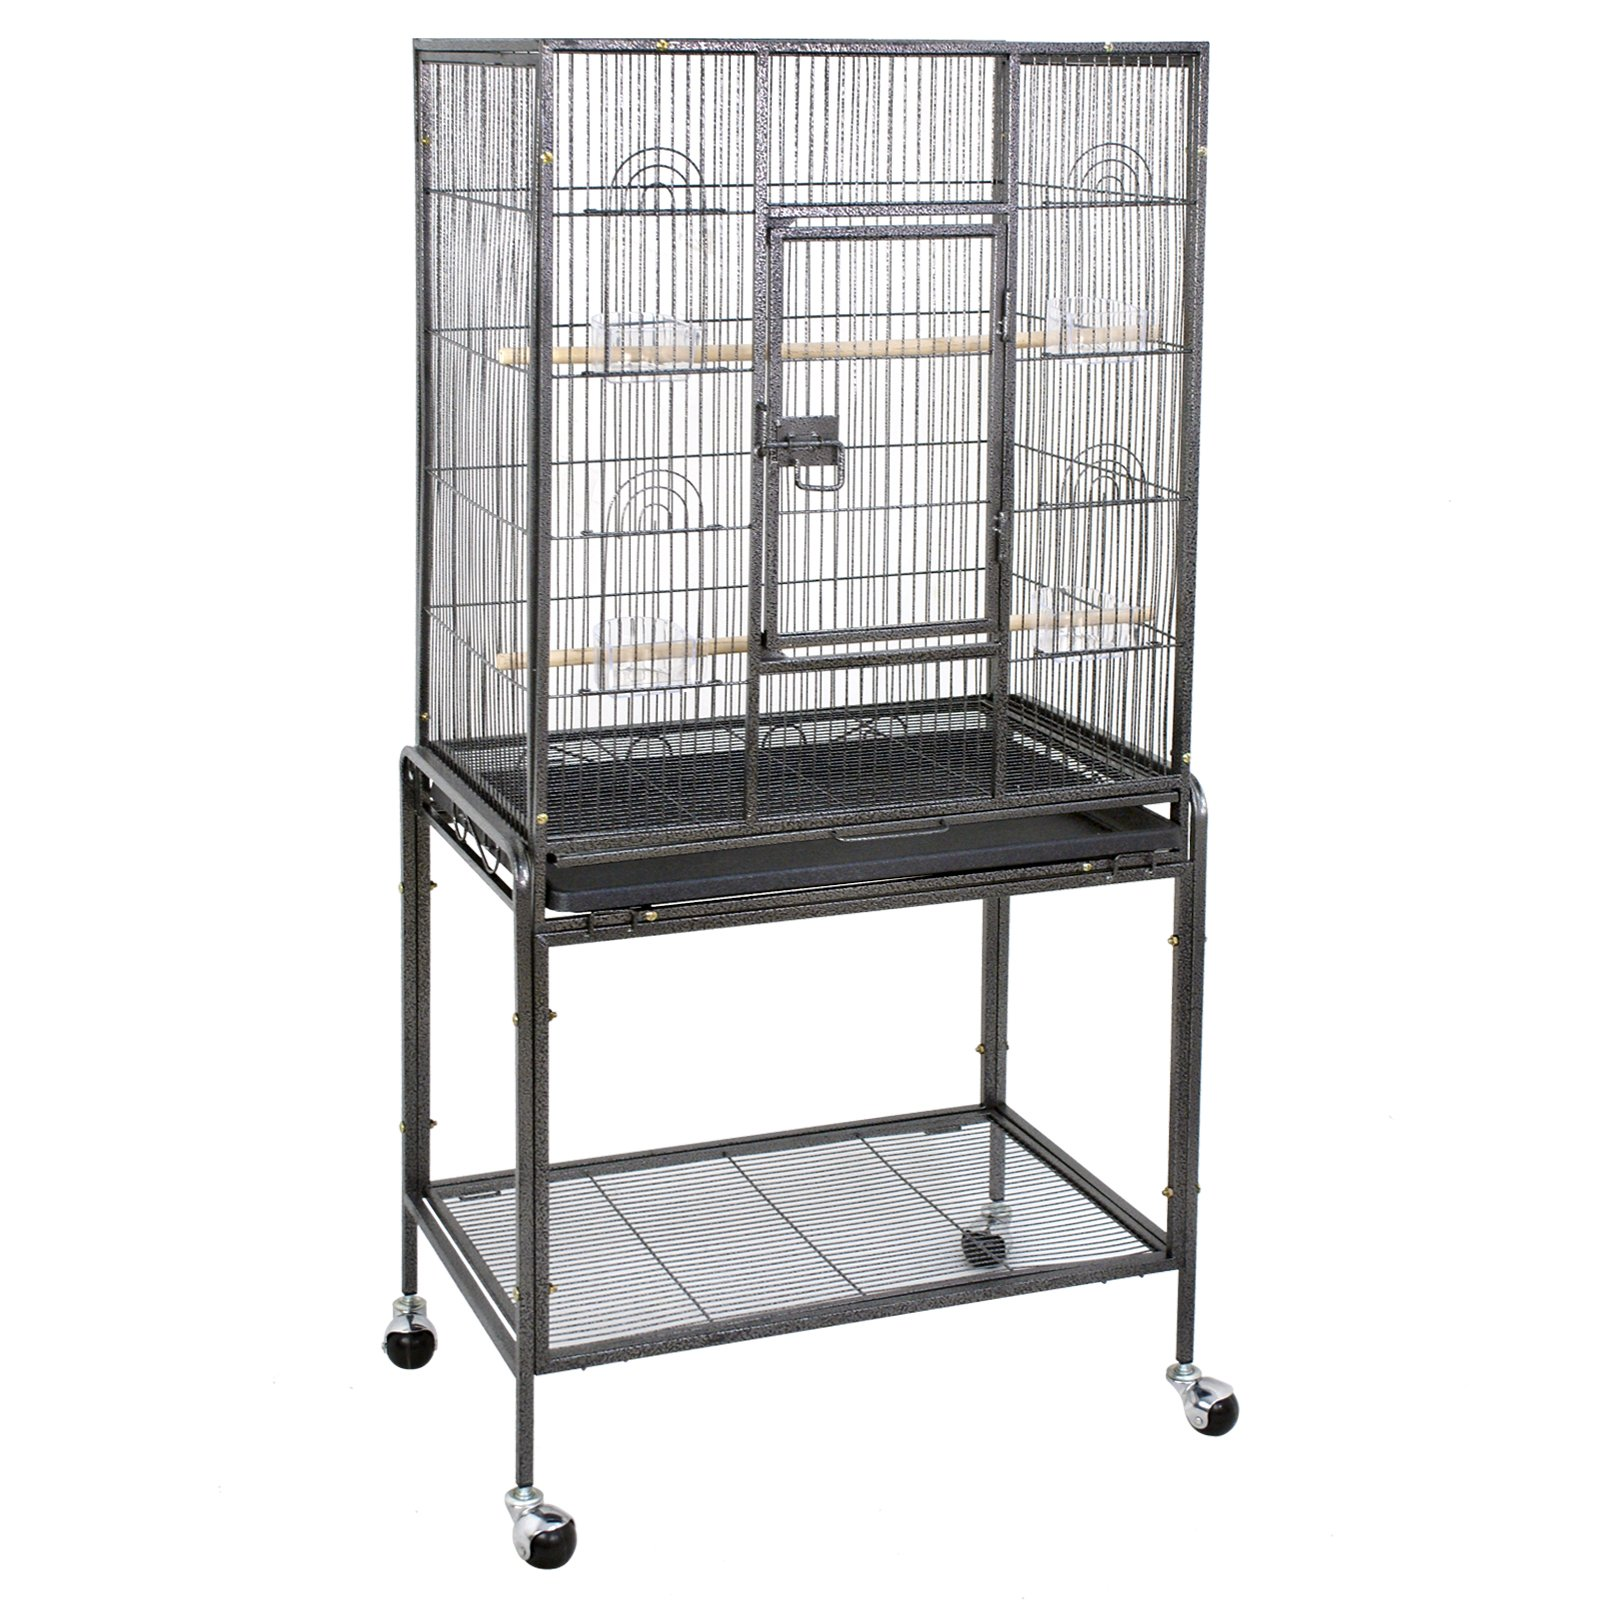 ZENY Bird Cage Stand Wrought Iron Construction 53-Inch Pet Bird Cage Play Top Parrot Cockatiel Cockatoo Parakeet Finches Birdcage